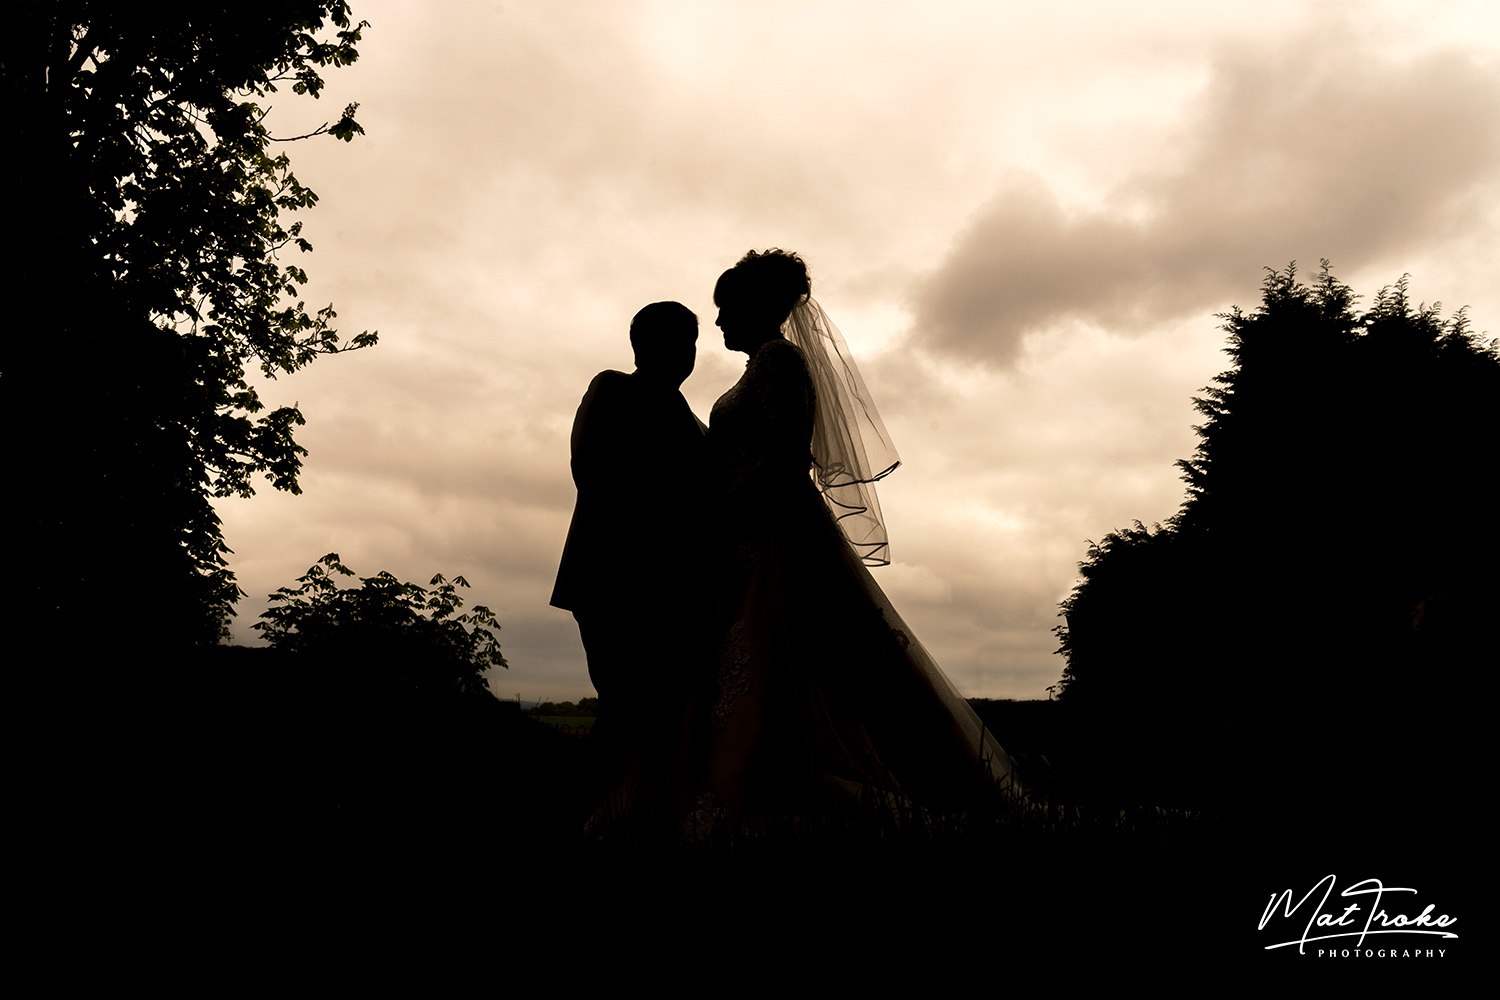 Nottingham_brides_wedding_photography_mour_hotel_dekota_photographer_mansfield_sherwood.jpg